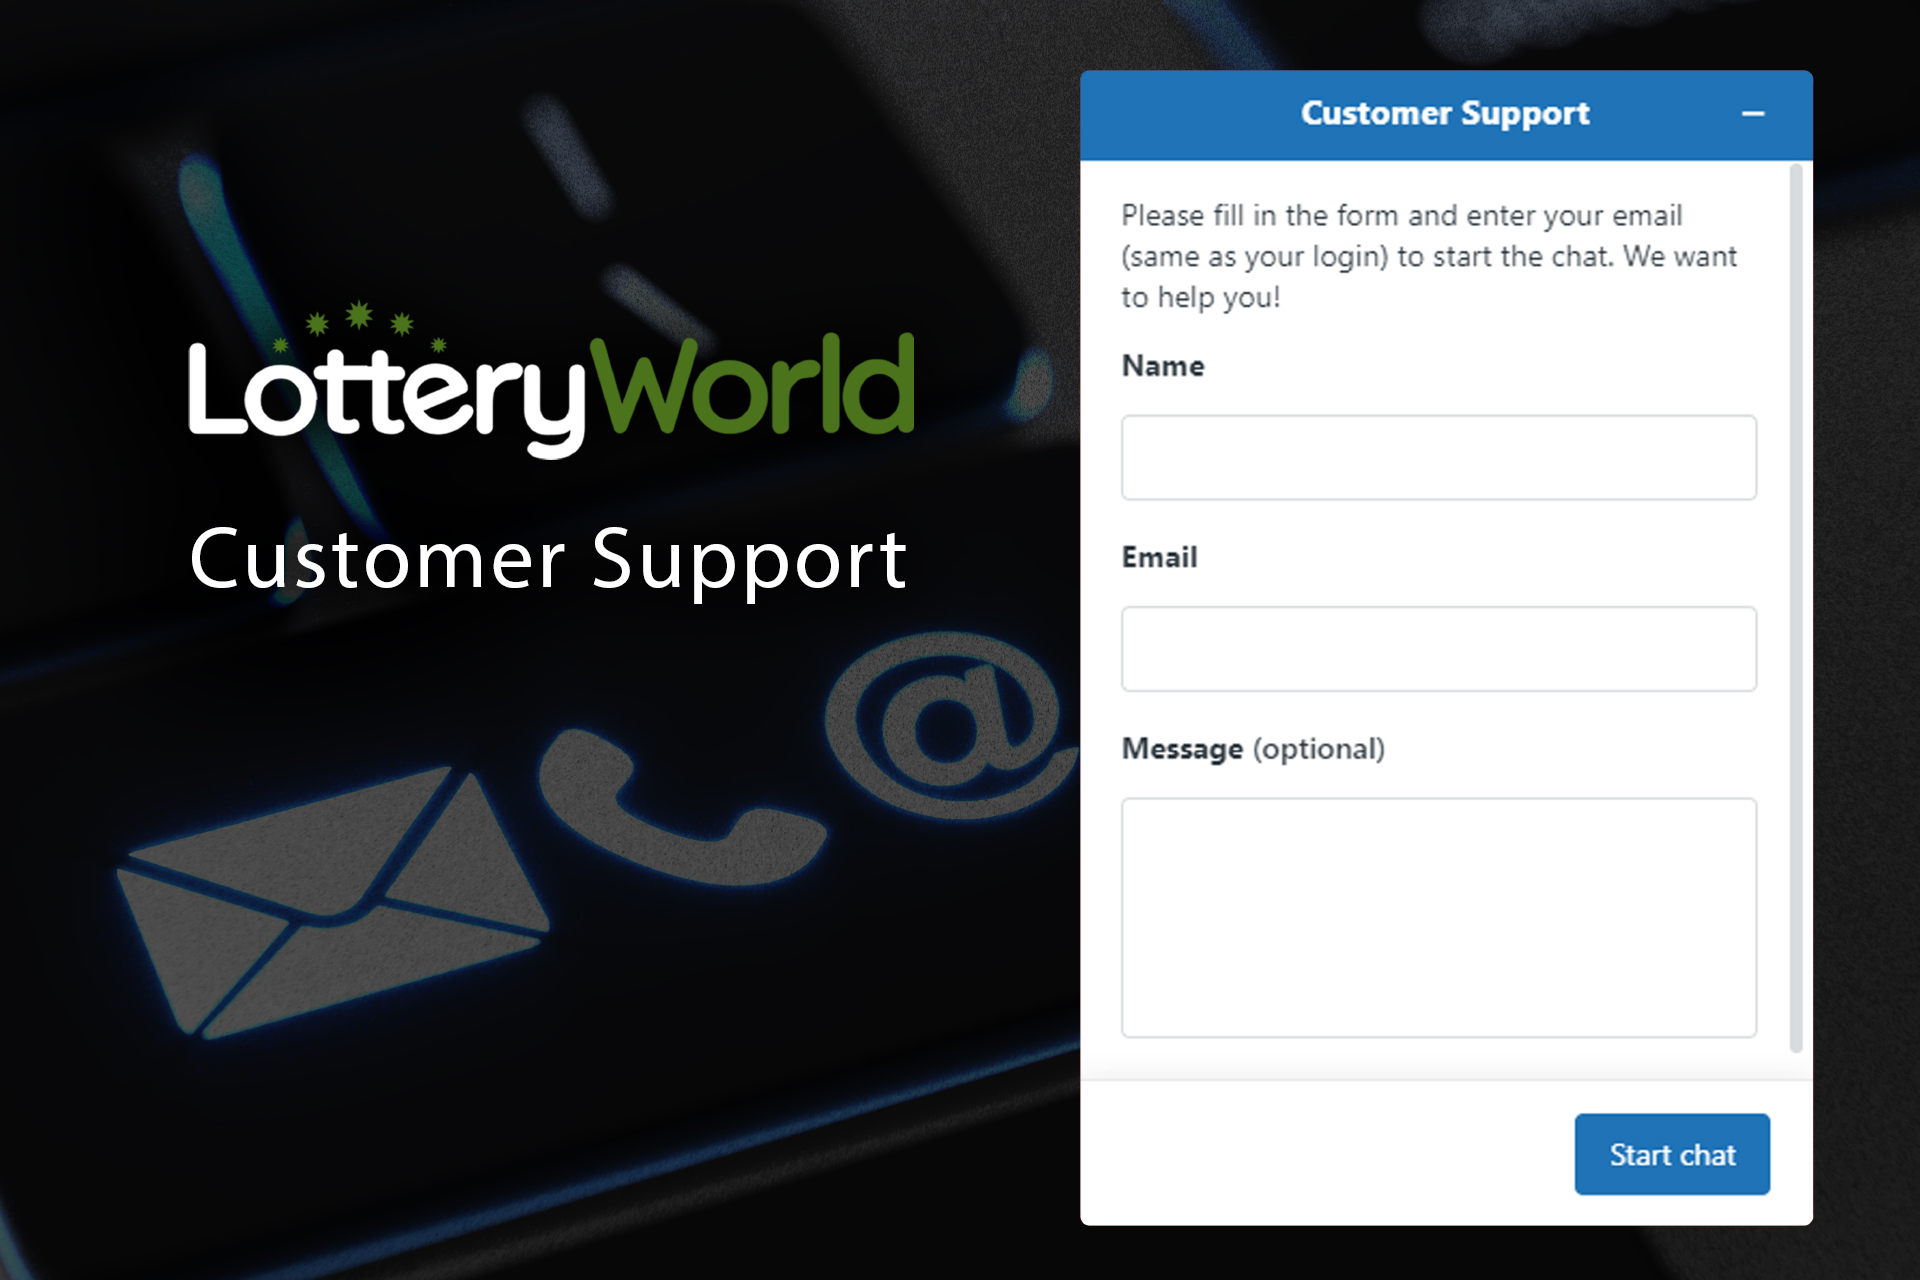 If you face any problems, let the customer support of LotteryWorld know.